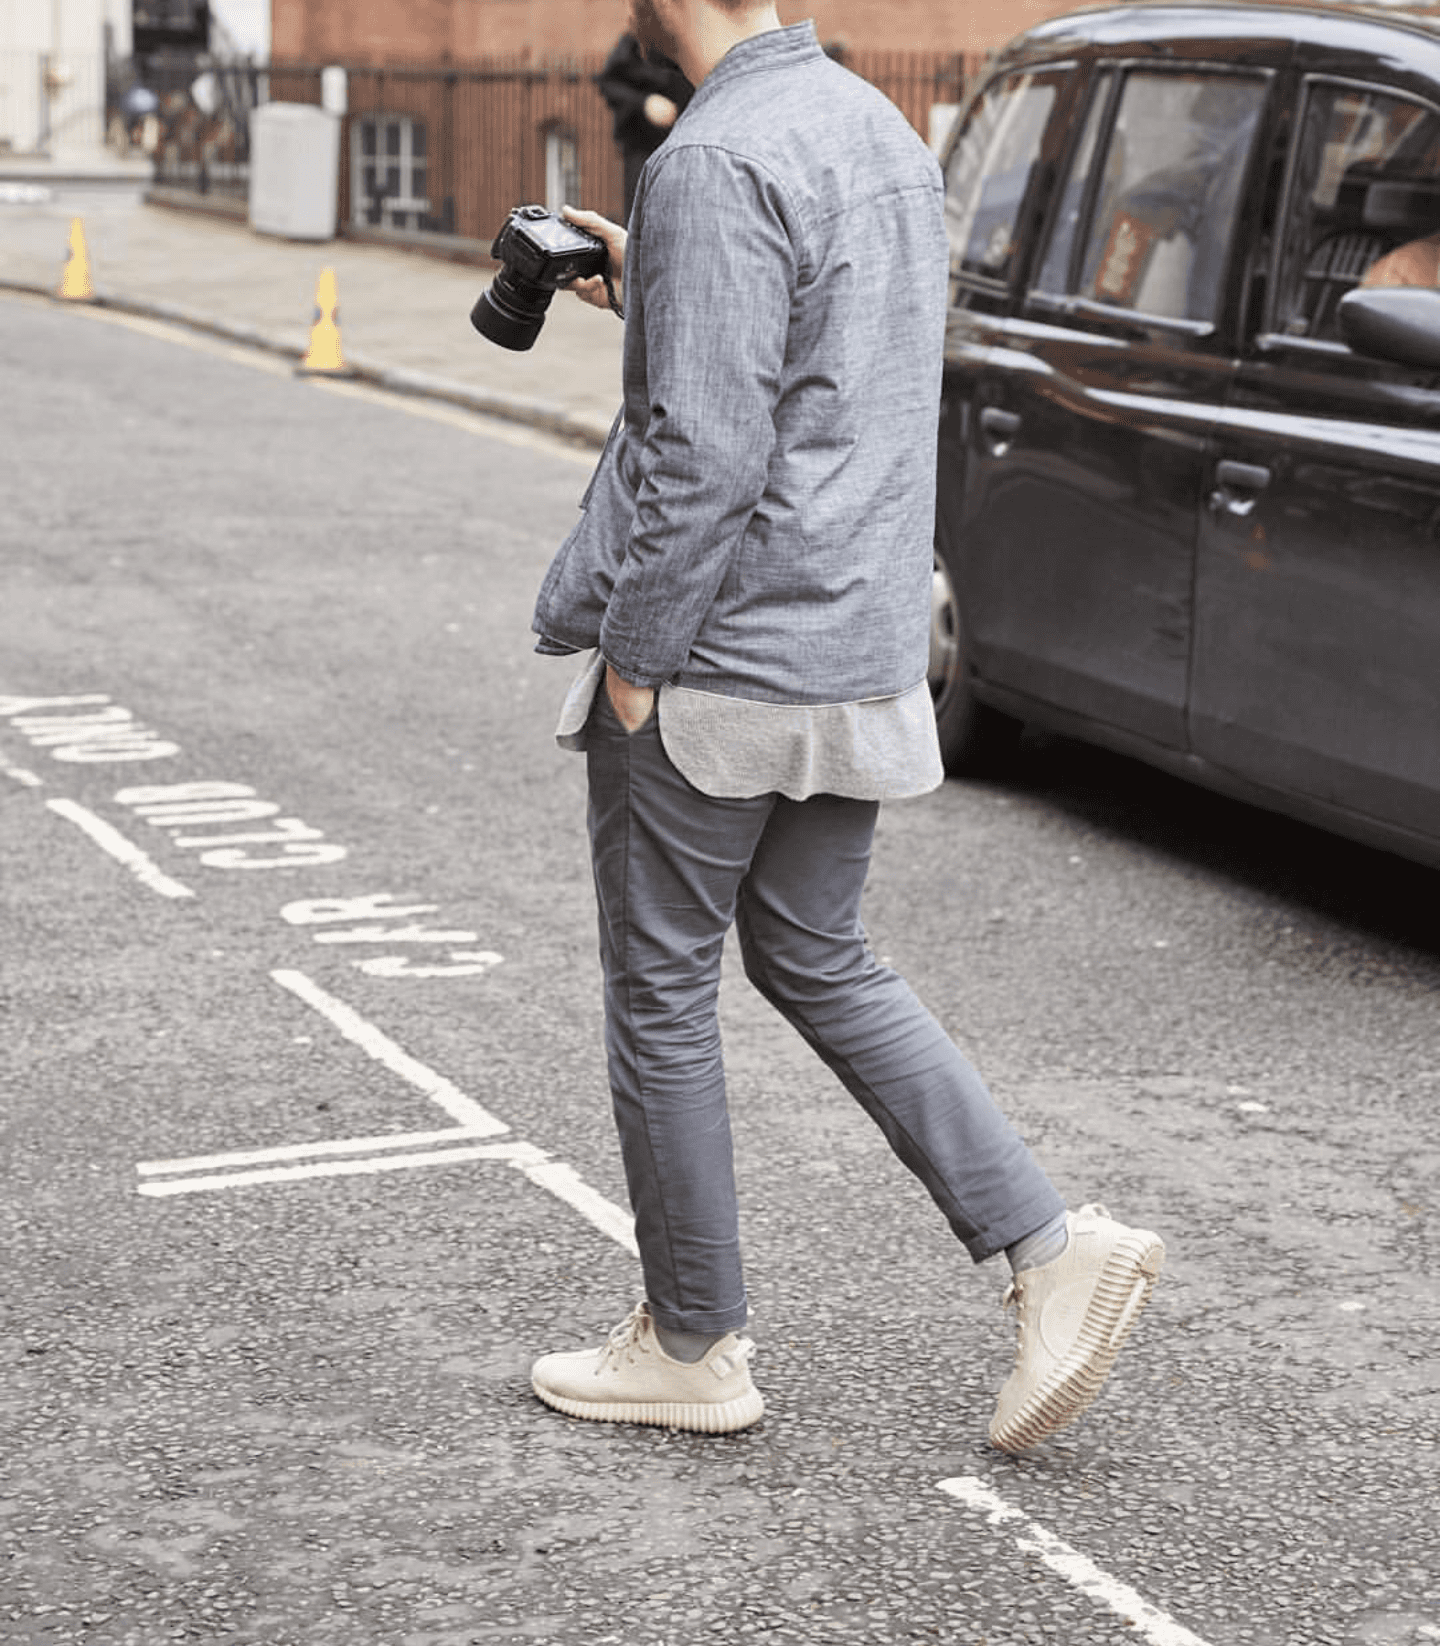 man wearing gray chinos